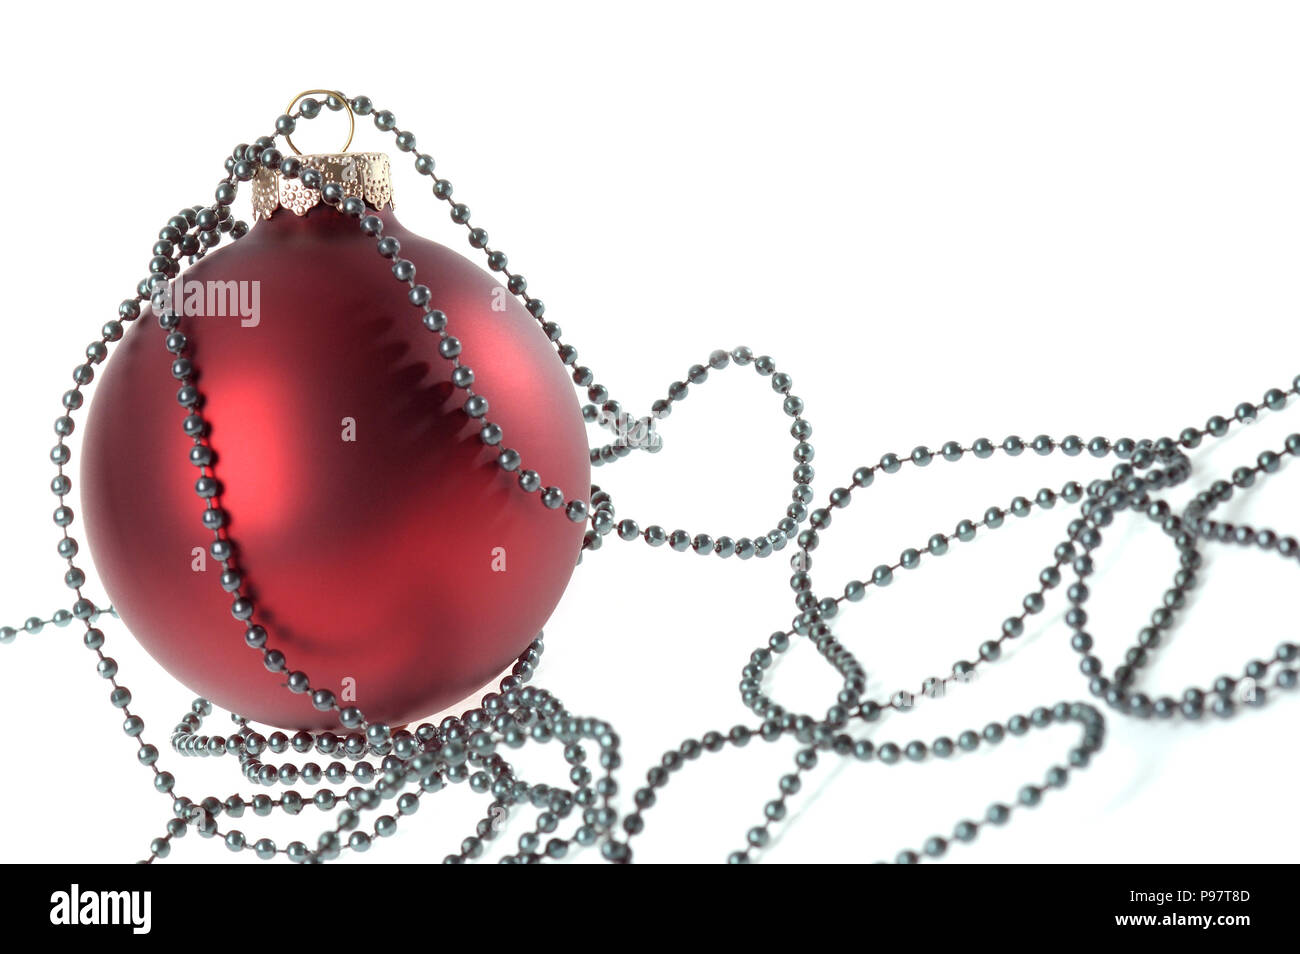 Red Christmas ornament and green beads, decoration - Stock Image